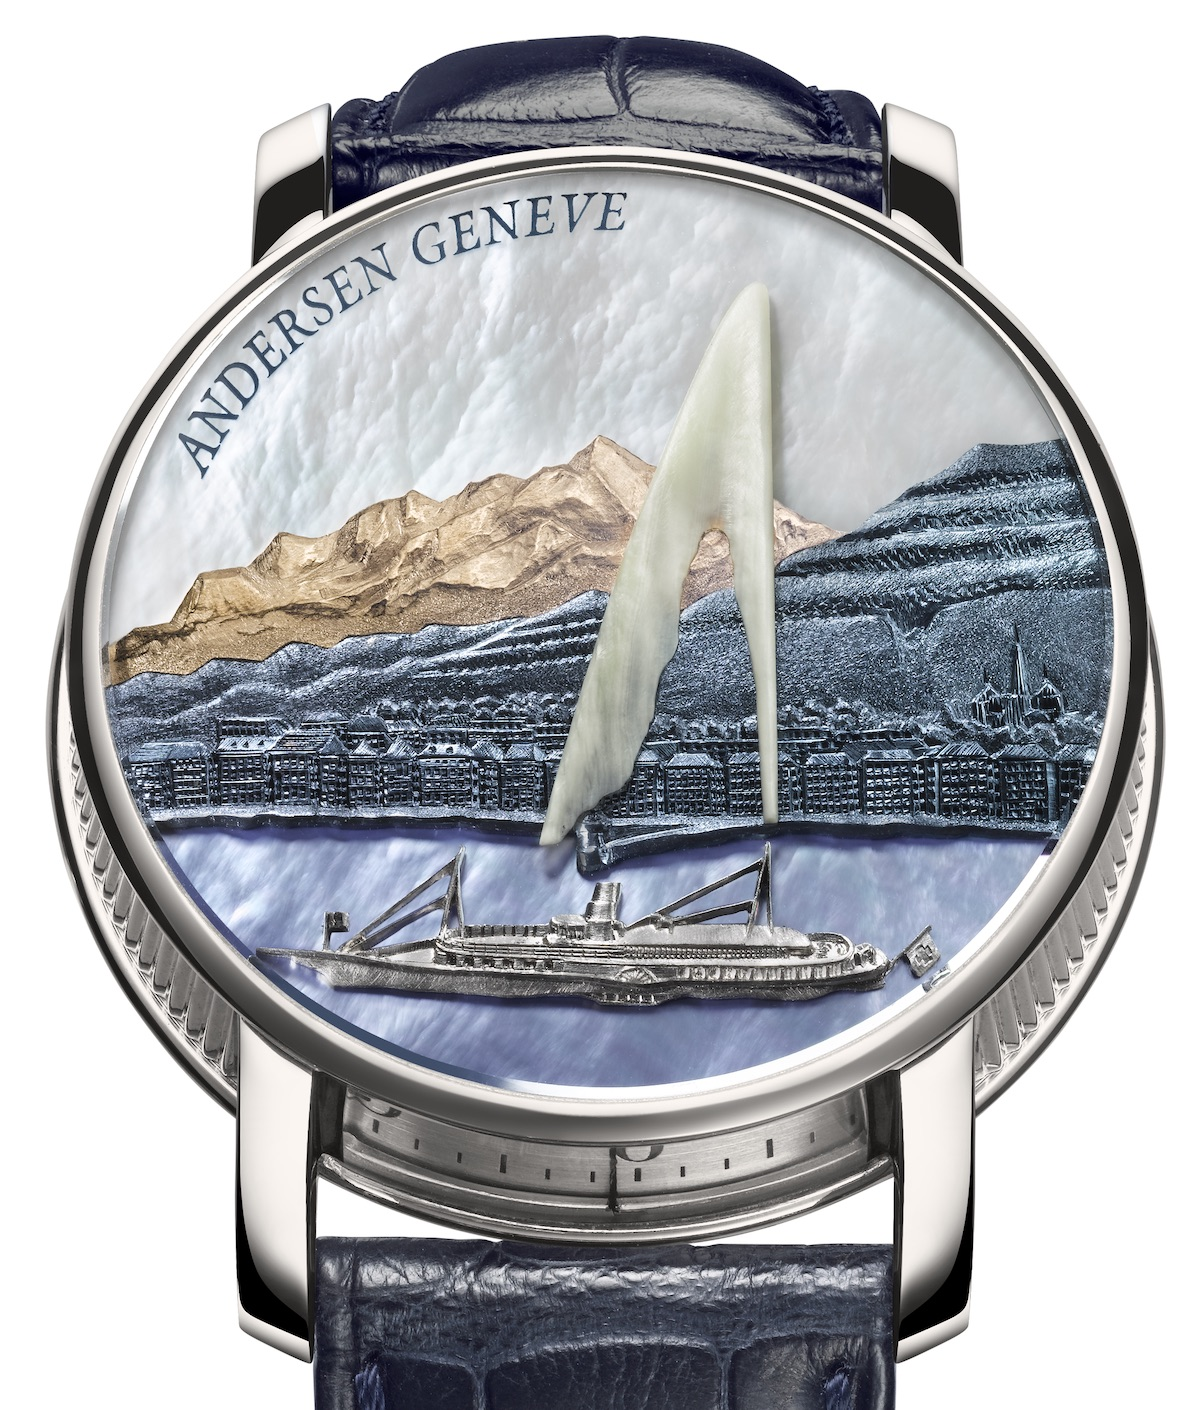 Andersen Geneve Only Watch 2019